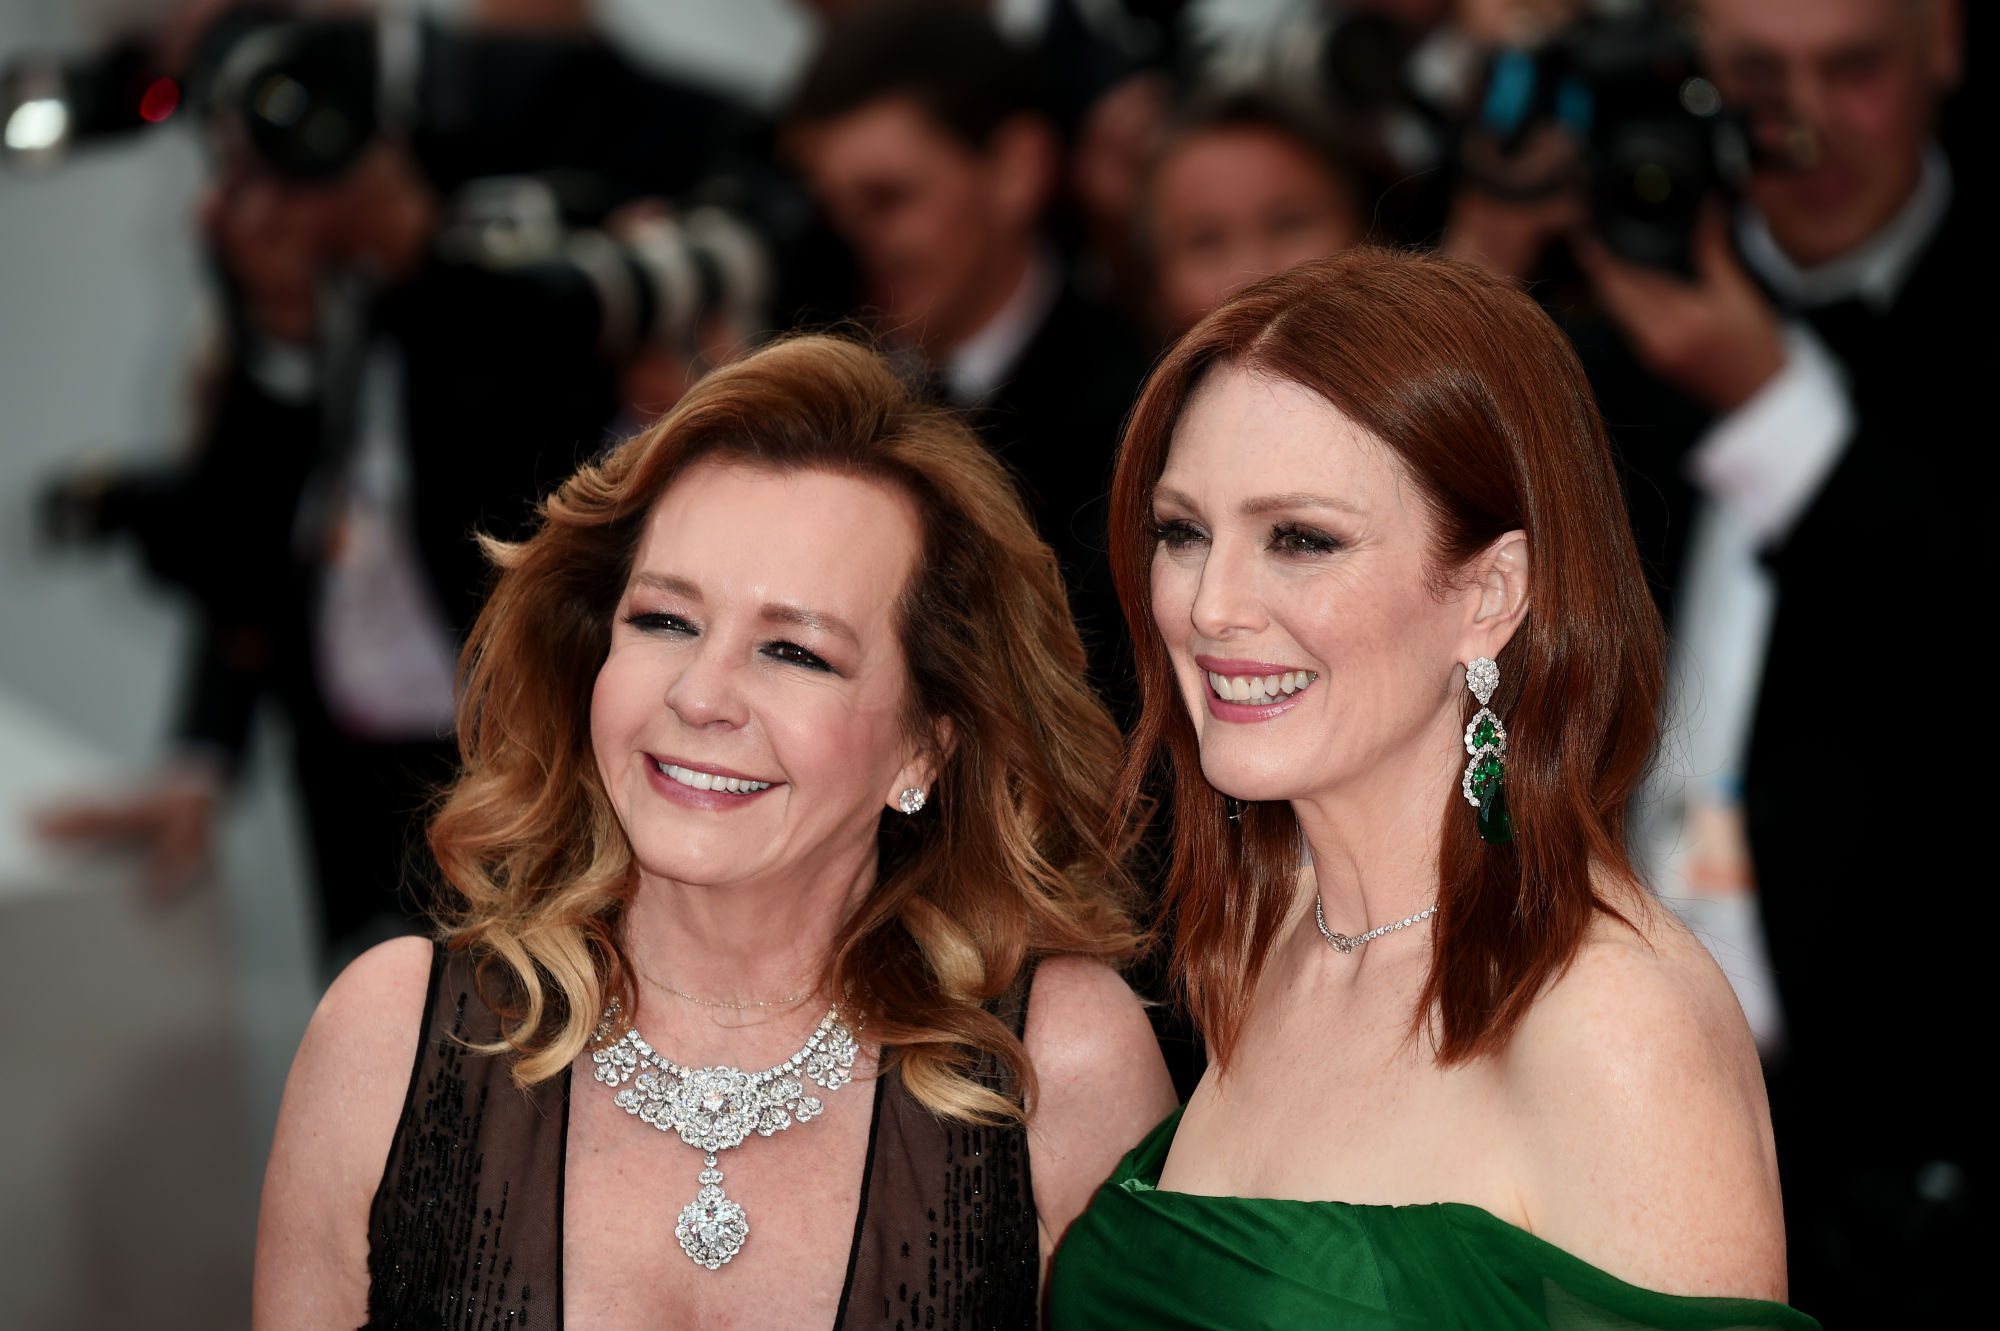 Caroline Scheufele and Julianne Moore wear Chopard jewellery during Cannes Film Festival 2019